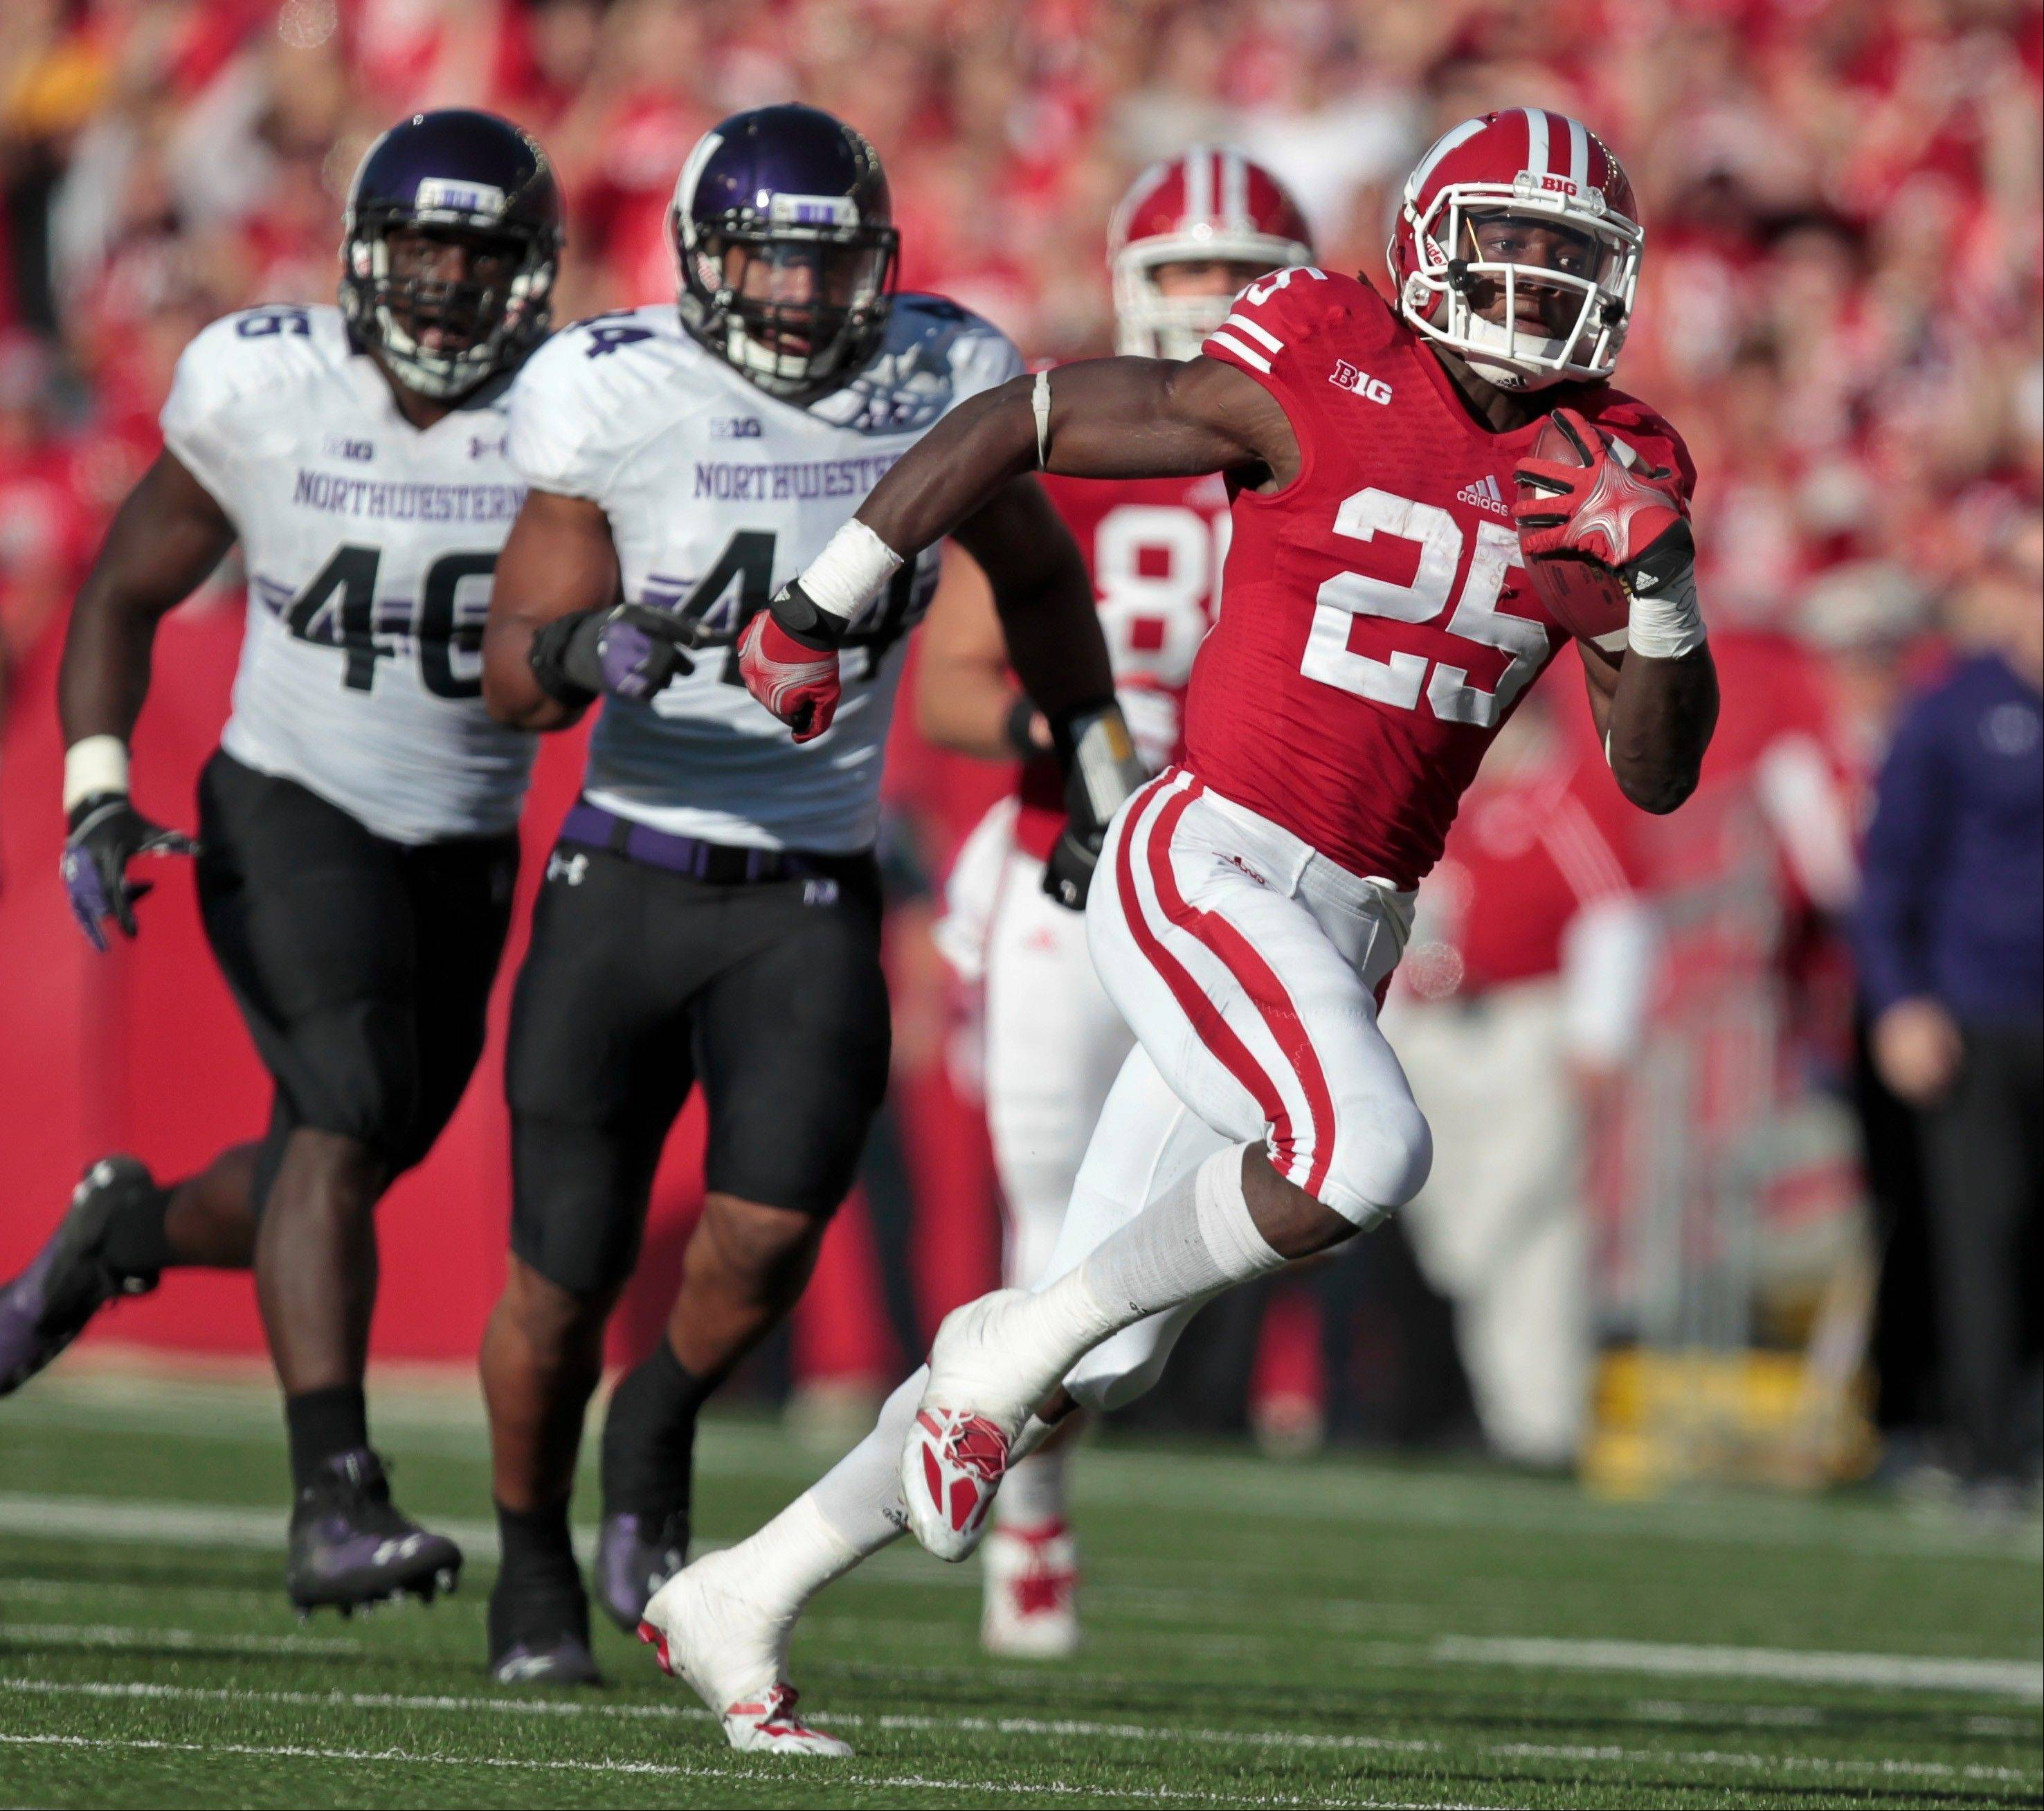 Wisconsin running back Melvin Gordon goes 71 yards for the touchdown Saturday as Northwestern�s Collin Ellis and Chi Chi Ariguzo watch.